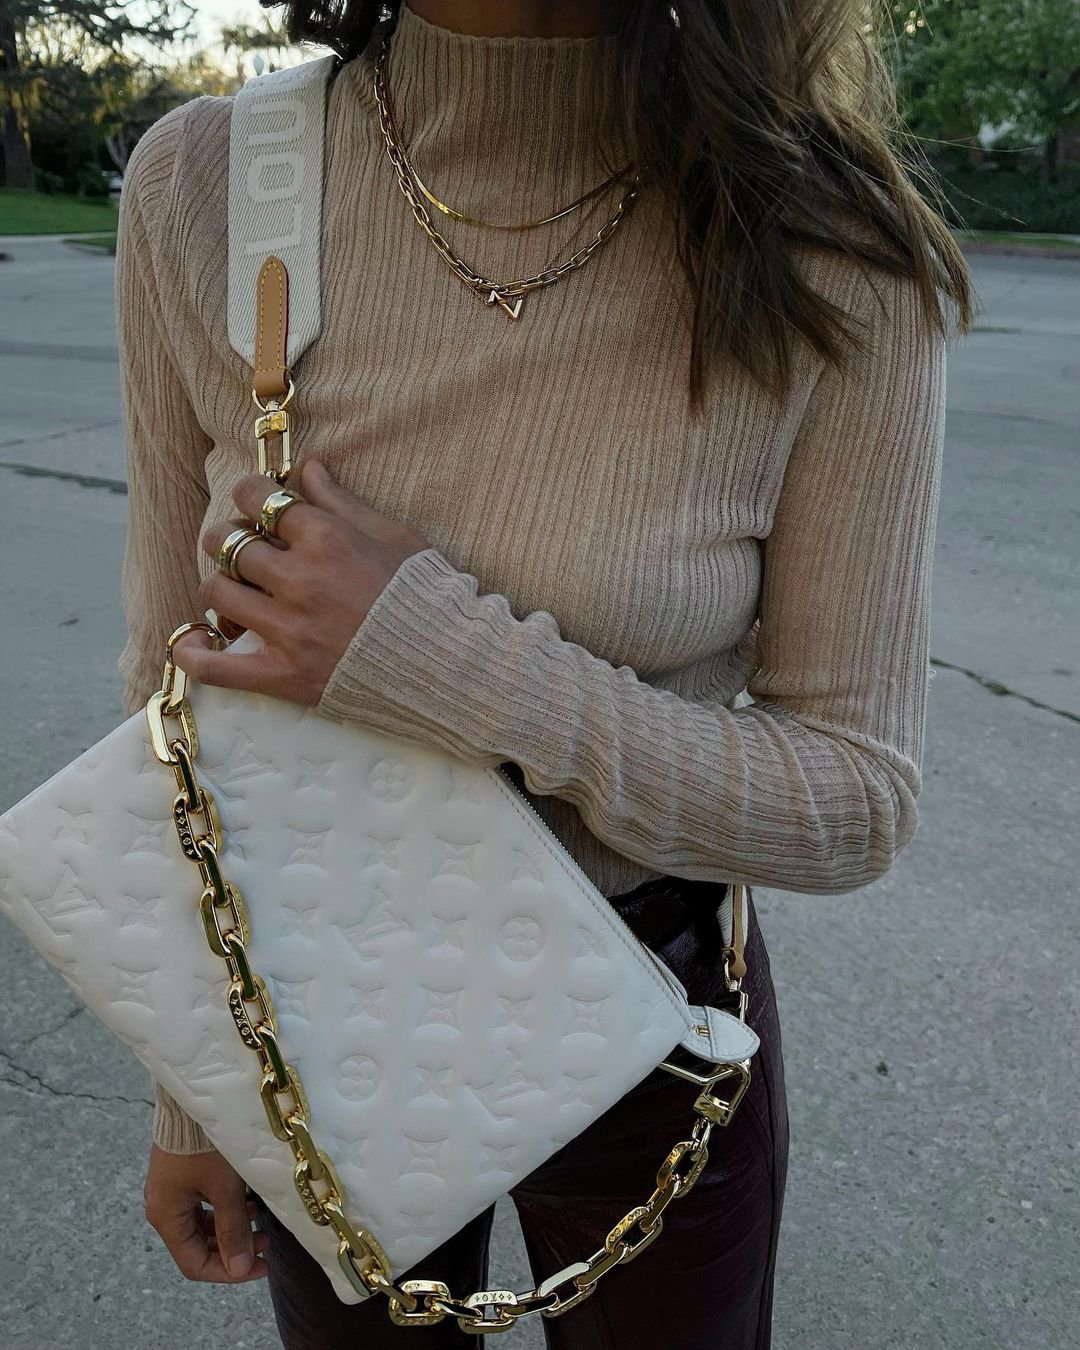 aime-song-louis-vuitton-coussin-pm-handbag-creme-instagram